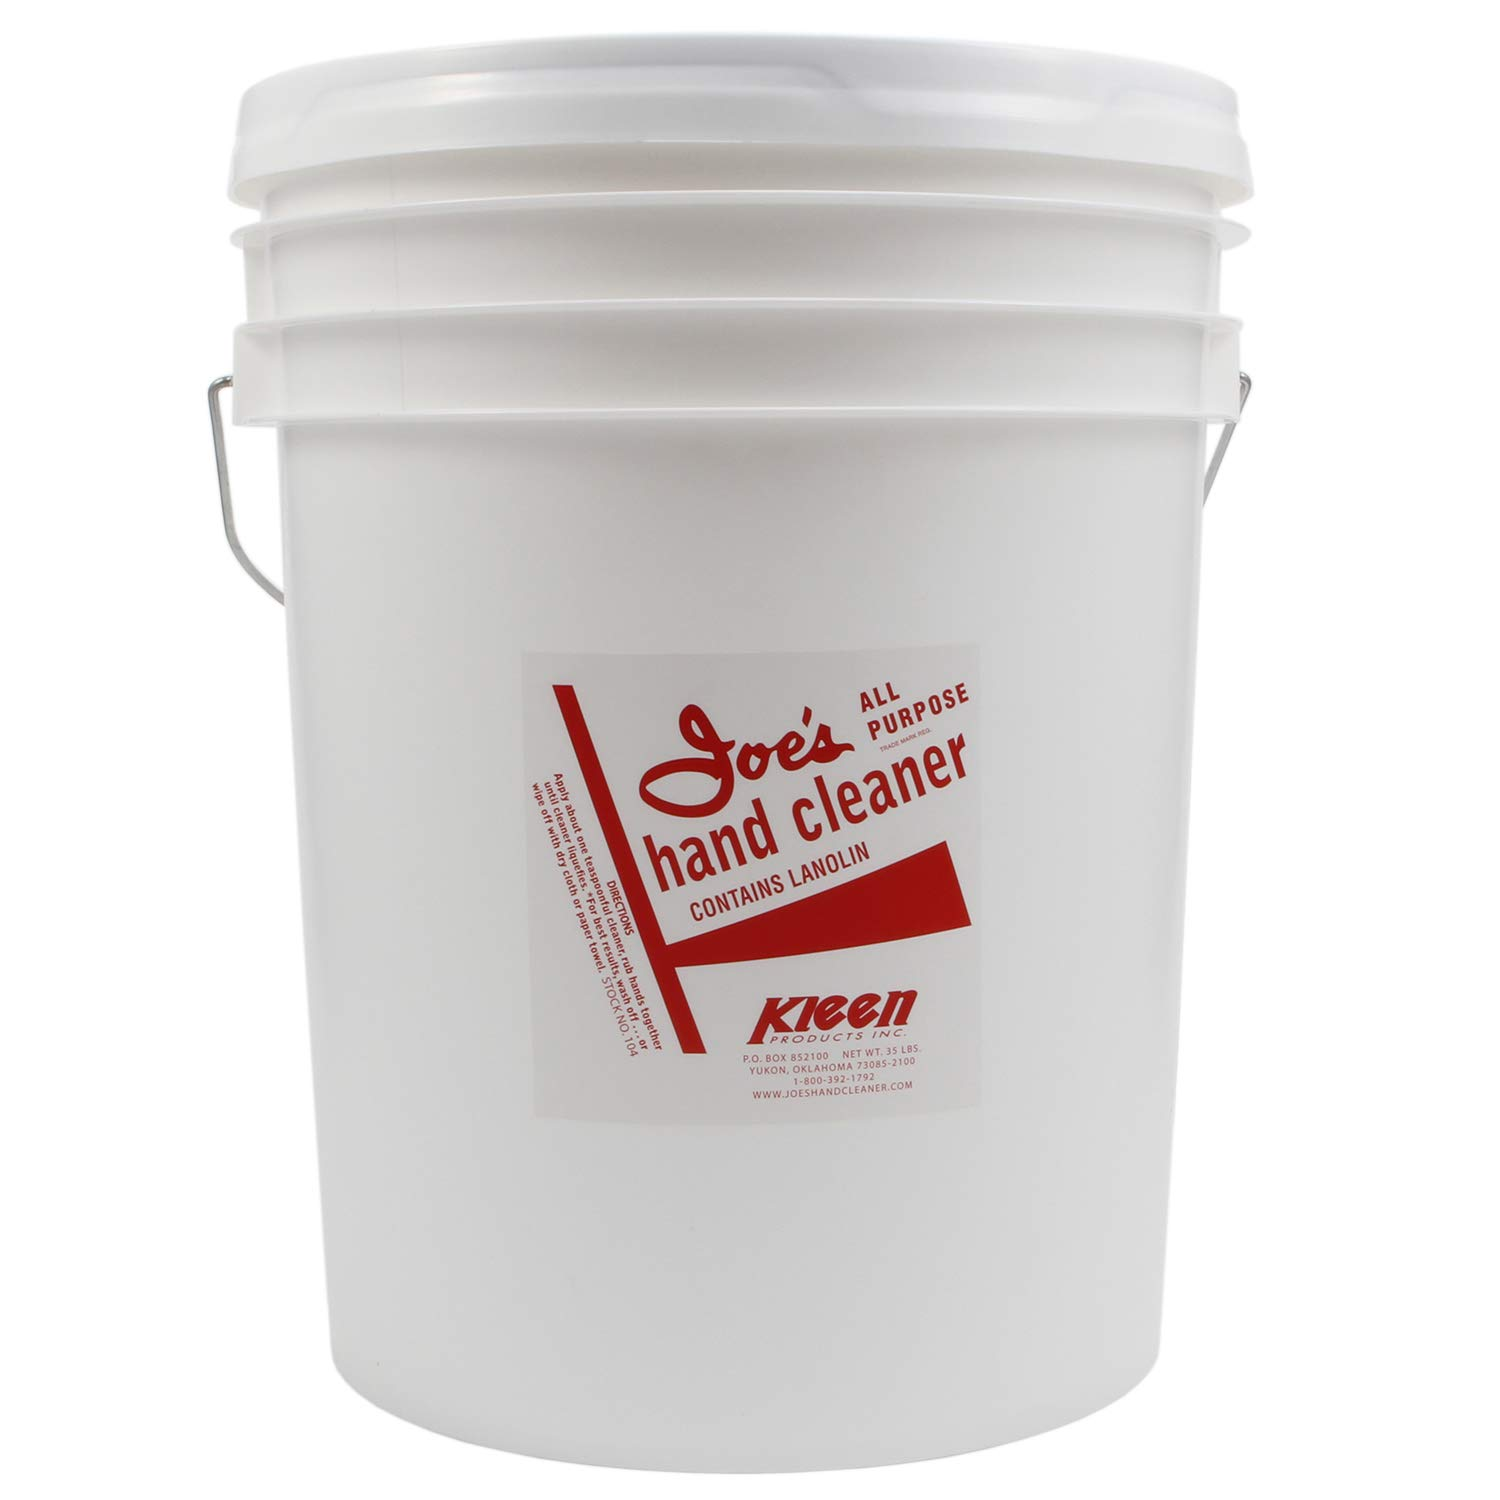 JOE'S HAND CLEANER 5Gal.Plastic Pail Hand Cleaner Joes Racing Products 104